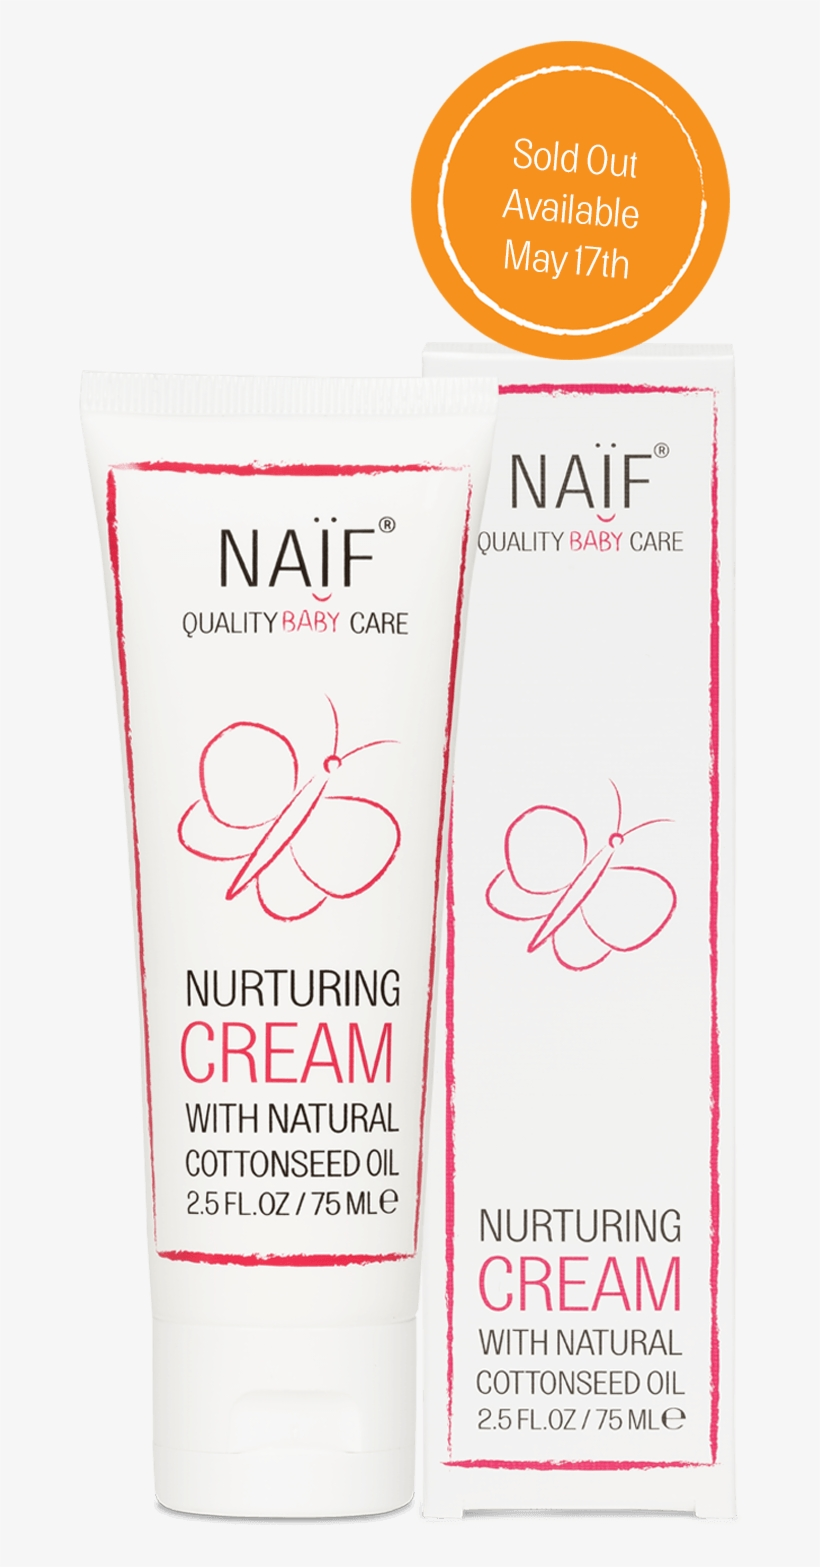 Naf Baby Care Nurturing Cream By Naf Baby Care, transparent png #4747271